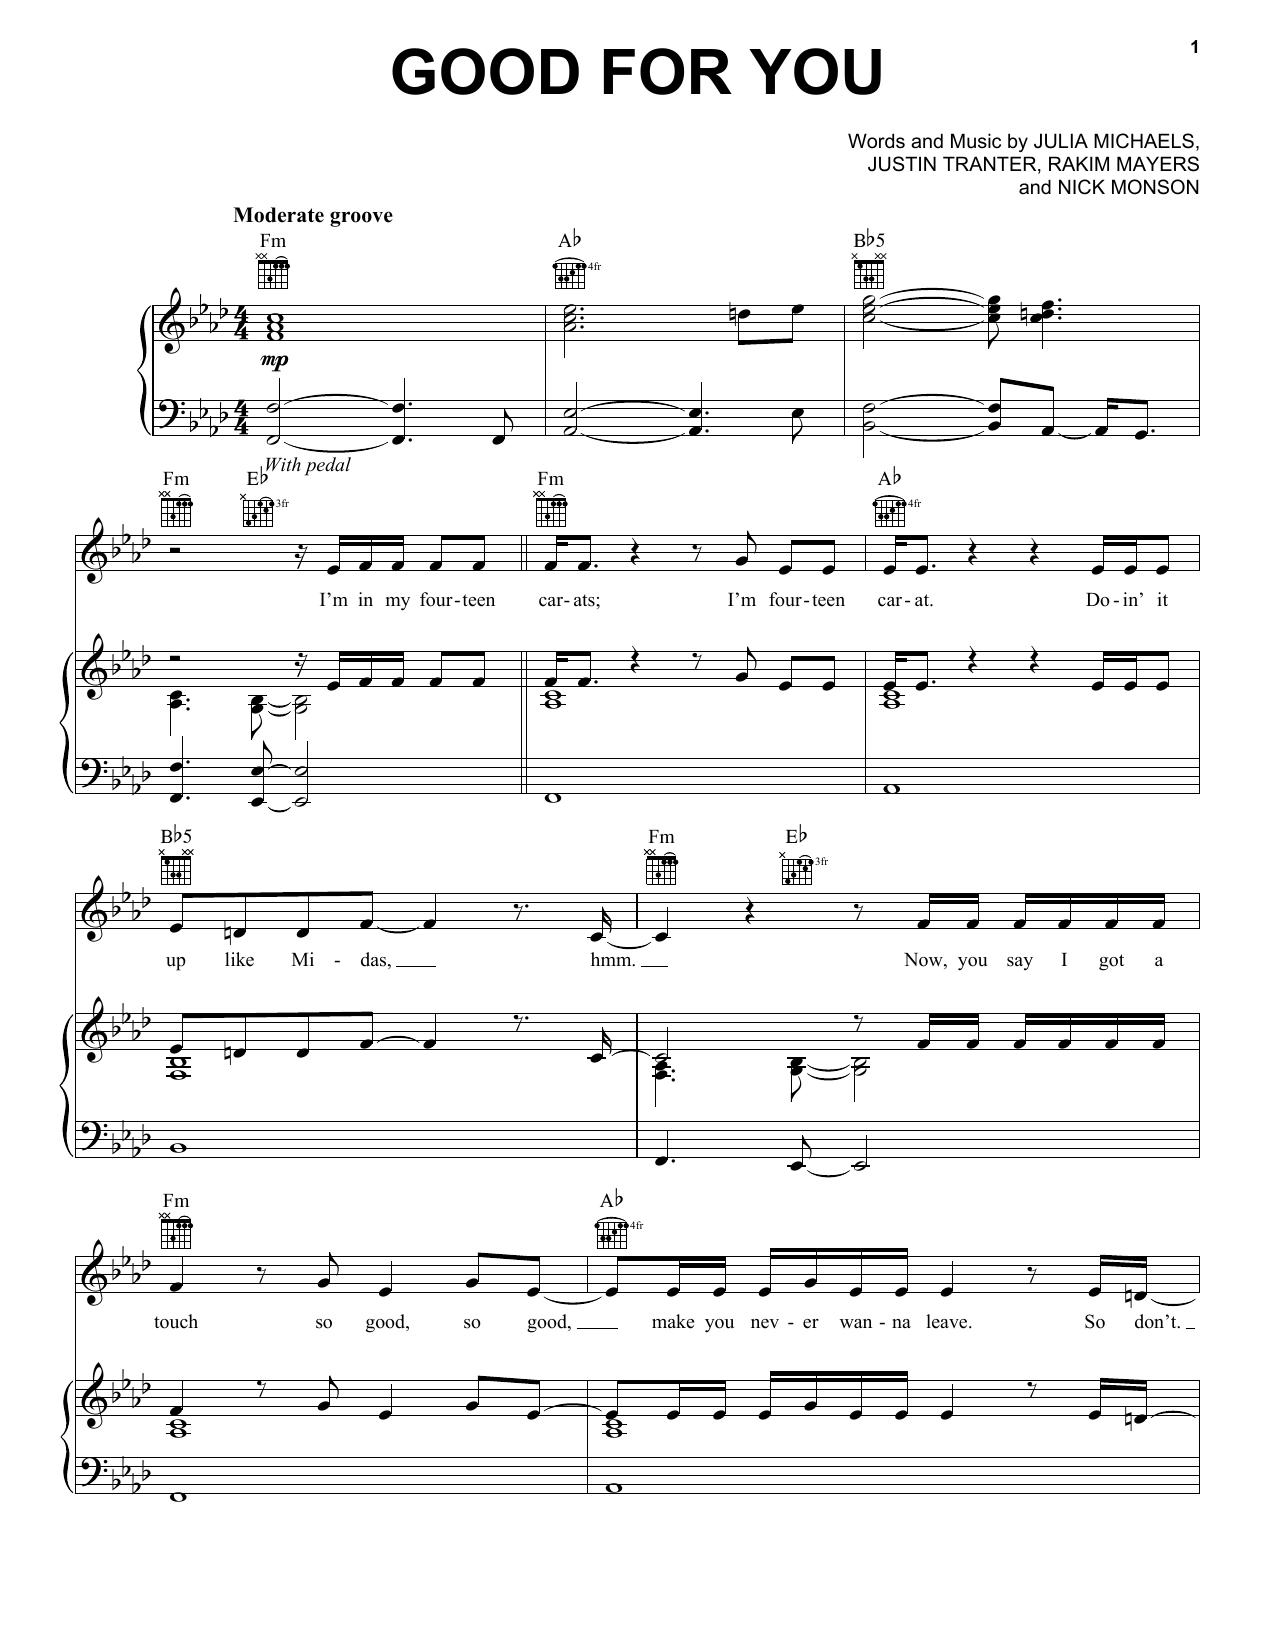 Selena Gomez Good For You sheet music notes and chords